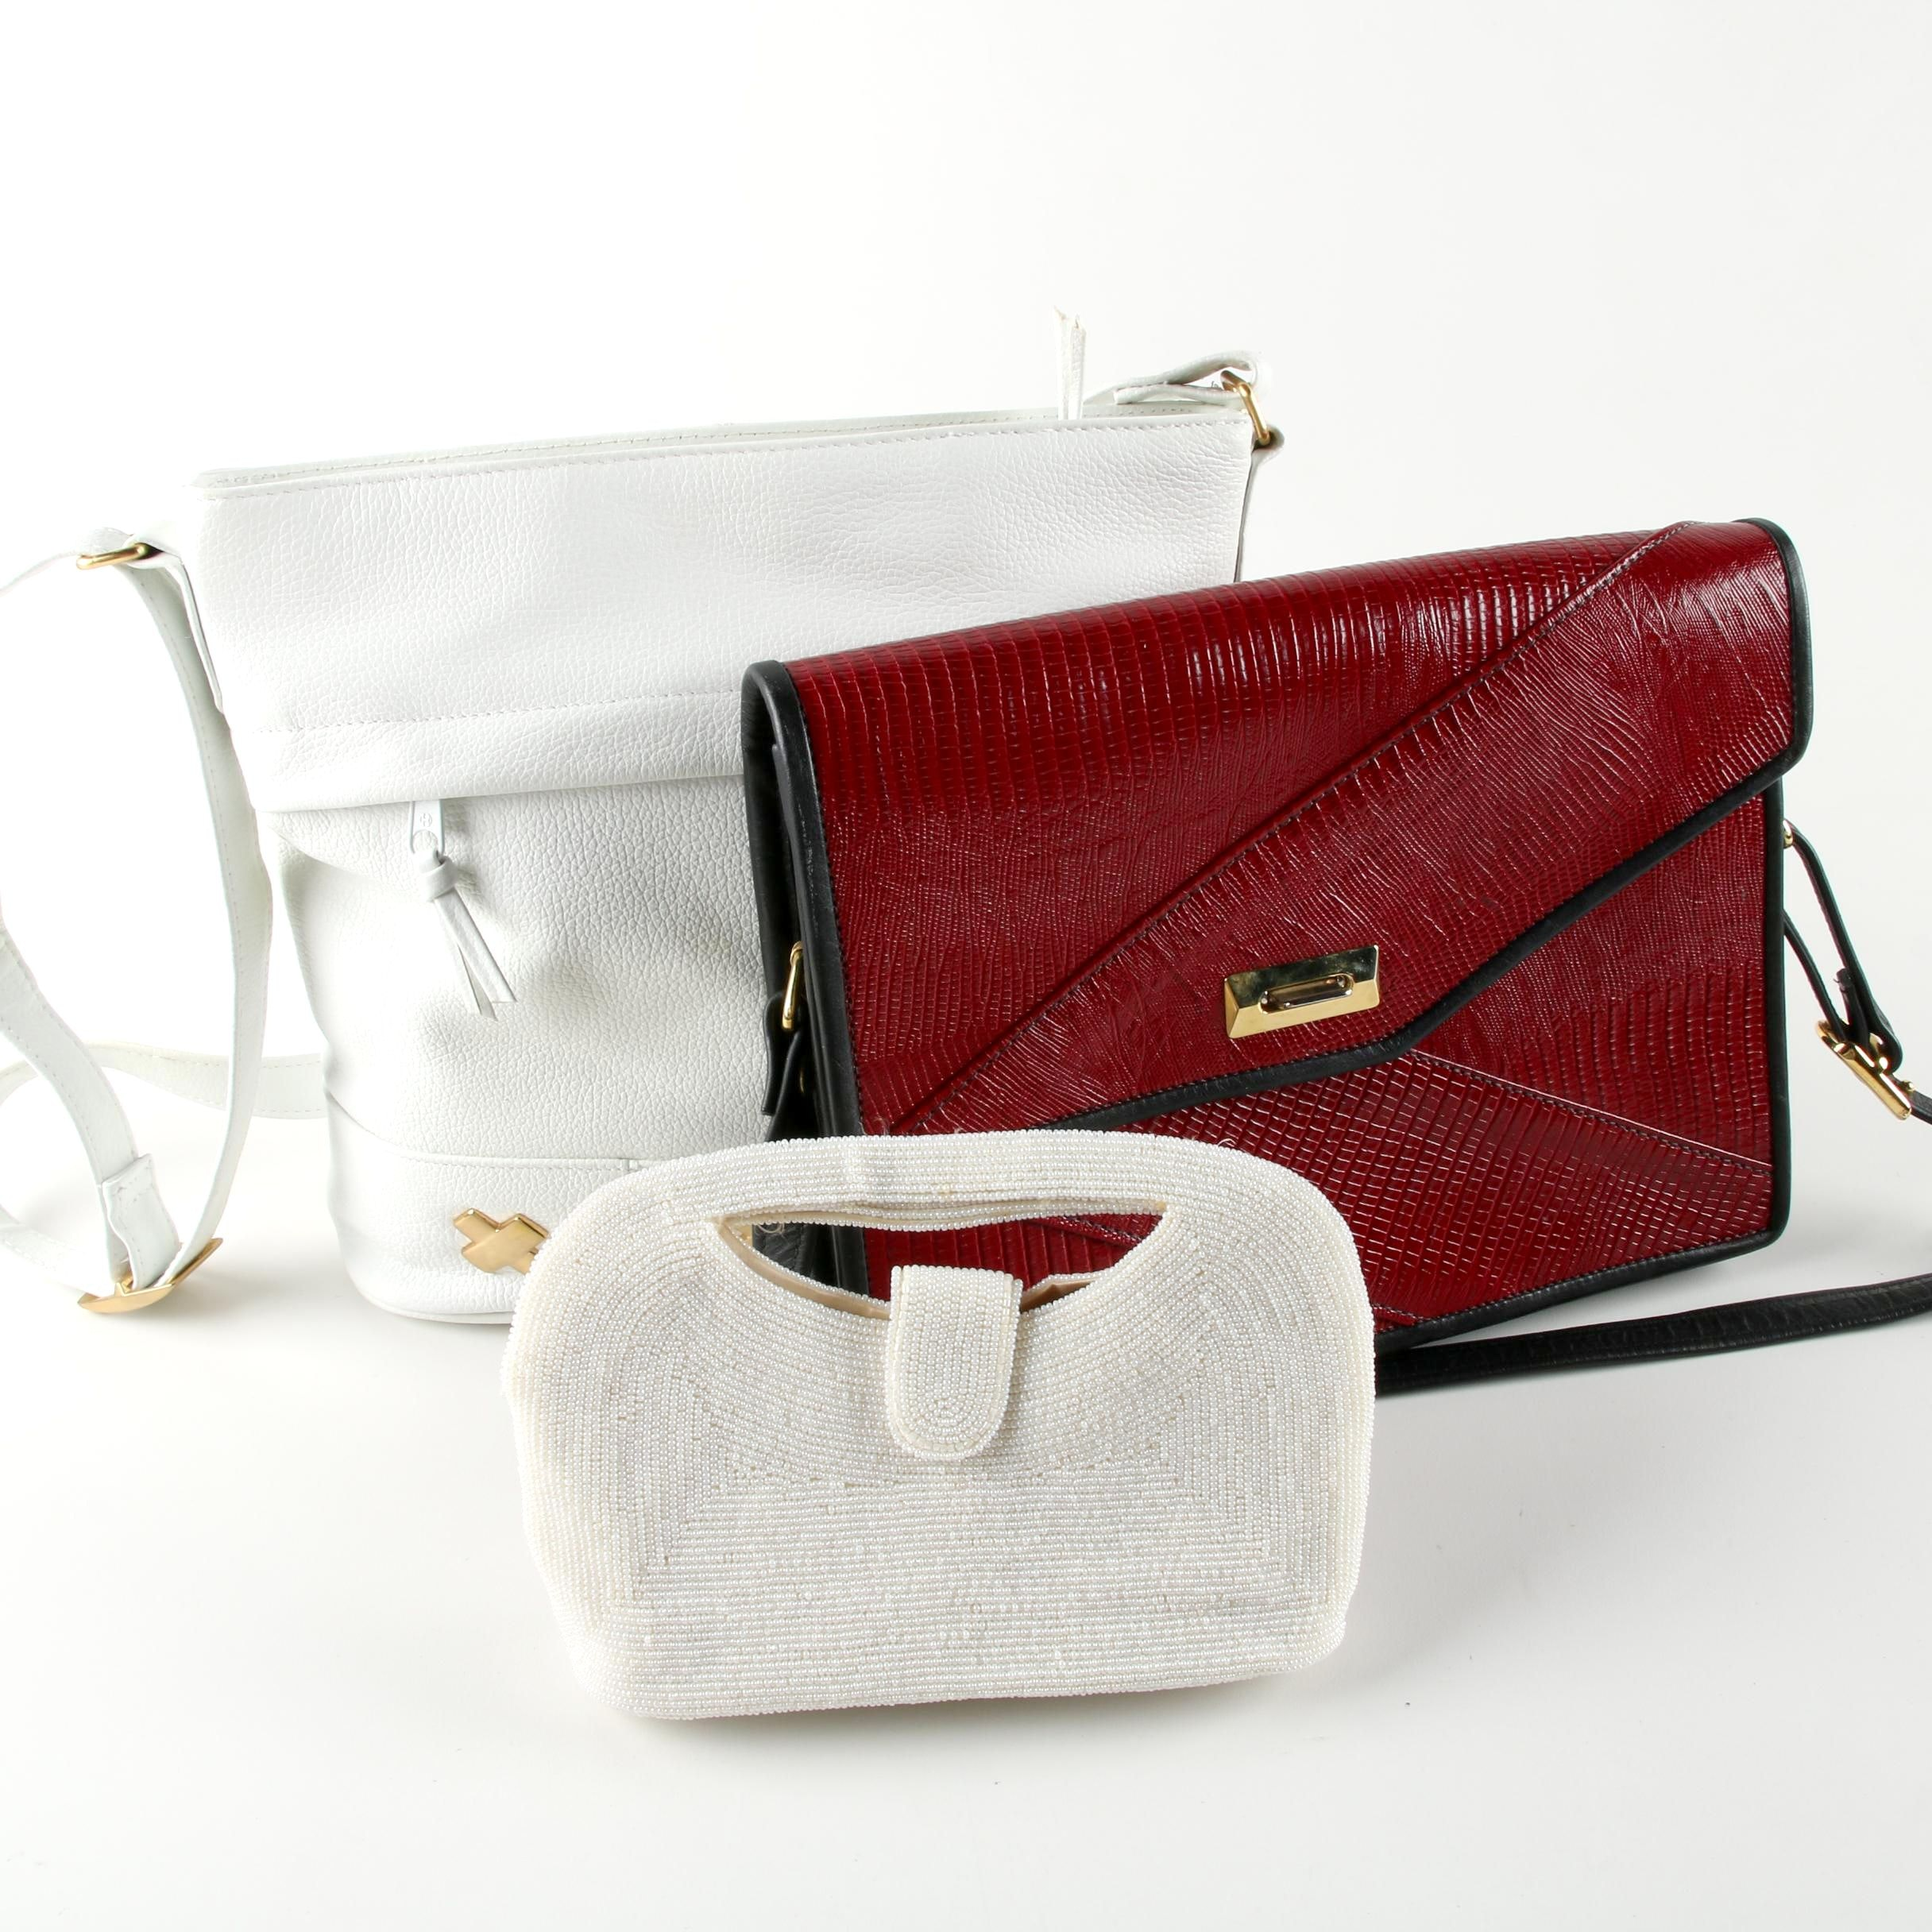 Leather and Beaded Handbags Including Richere